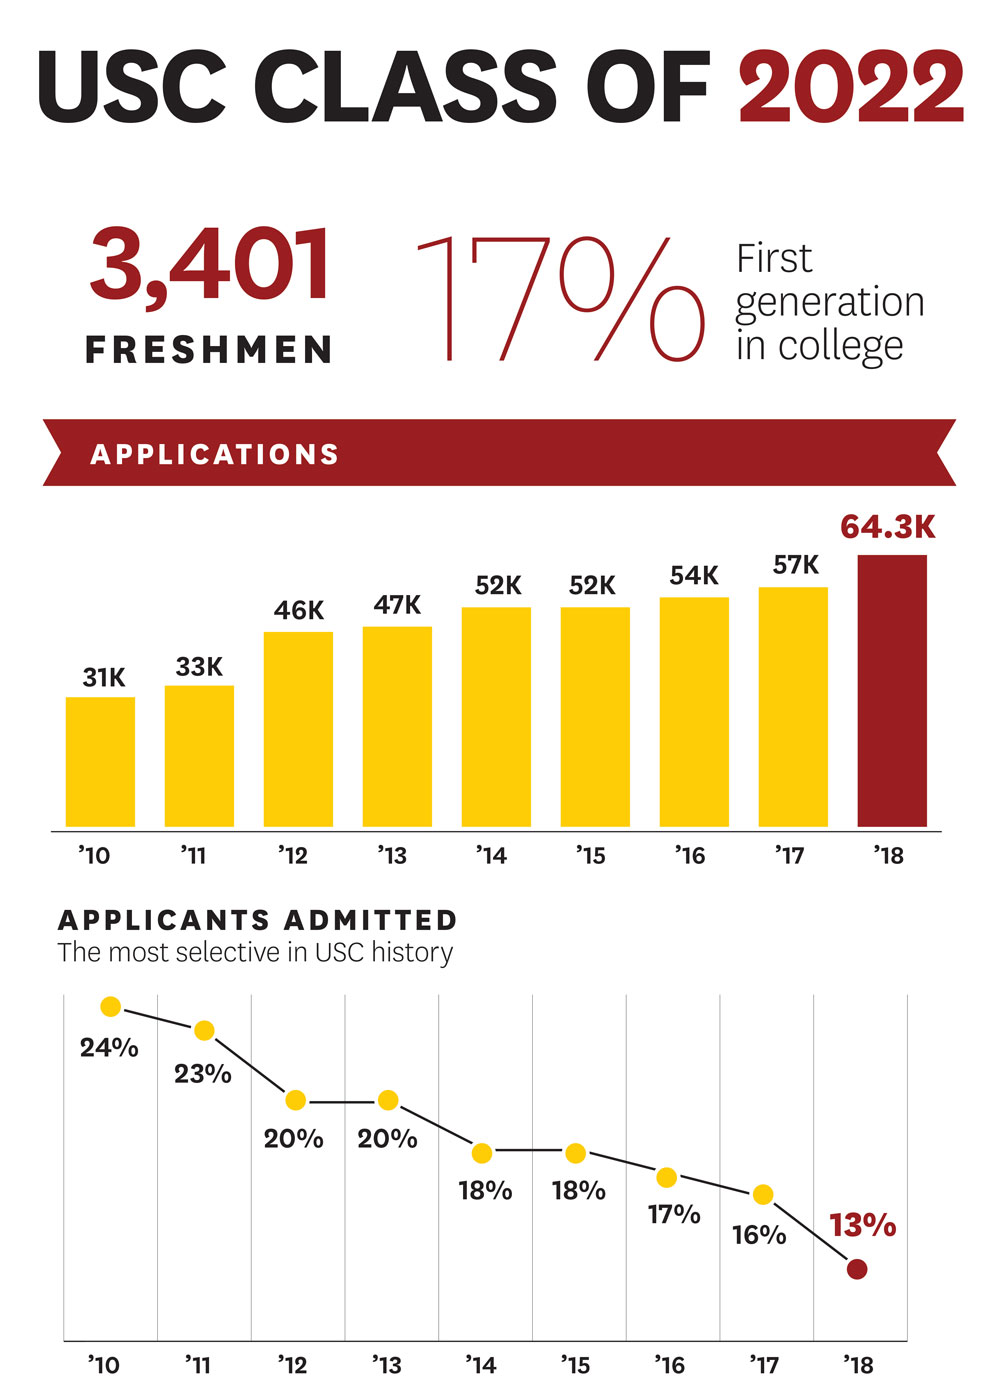 USC Class of 2022: 3,401 freshmen, 17% first generation in college